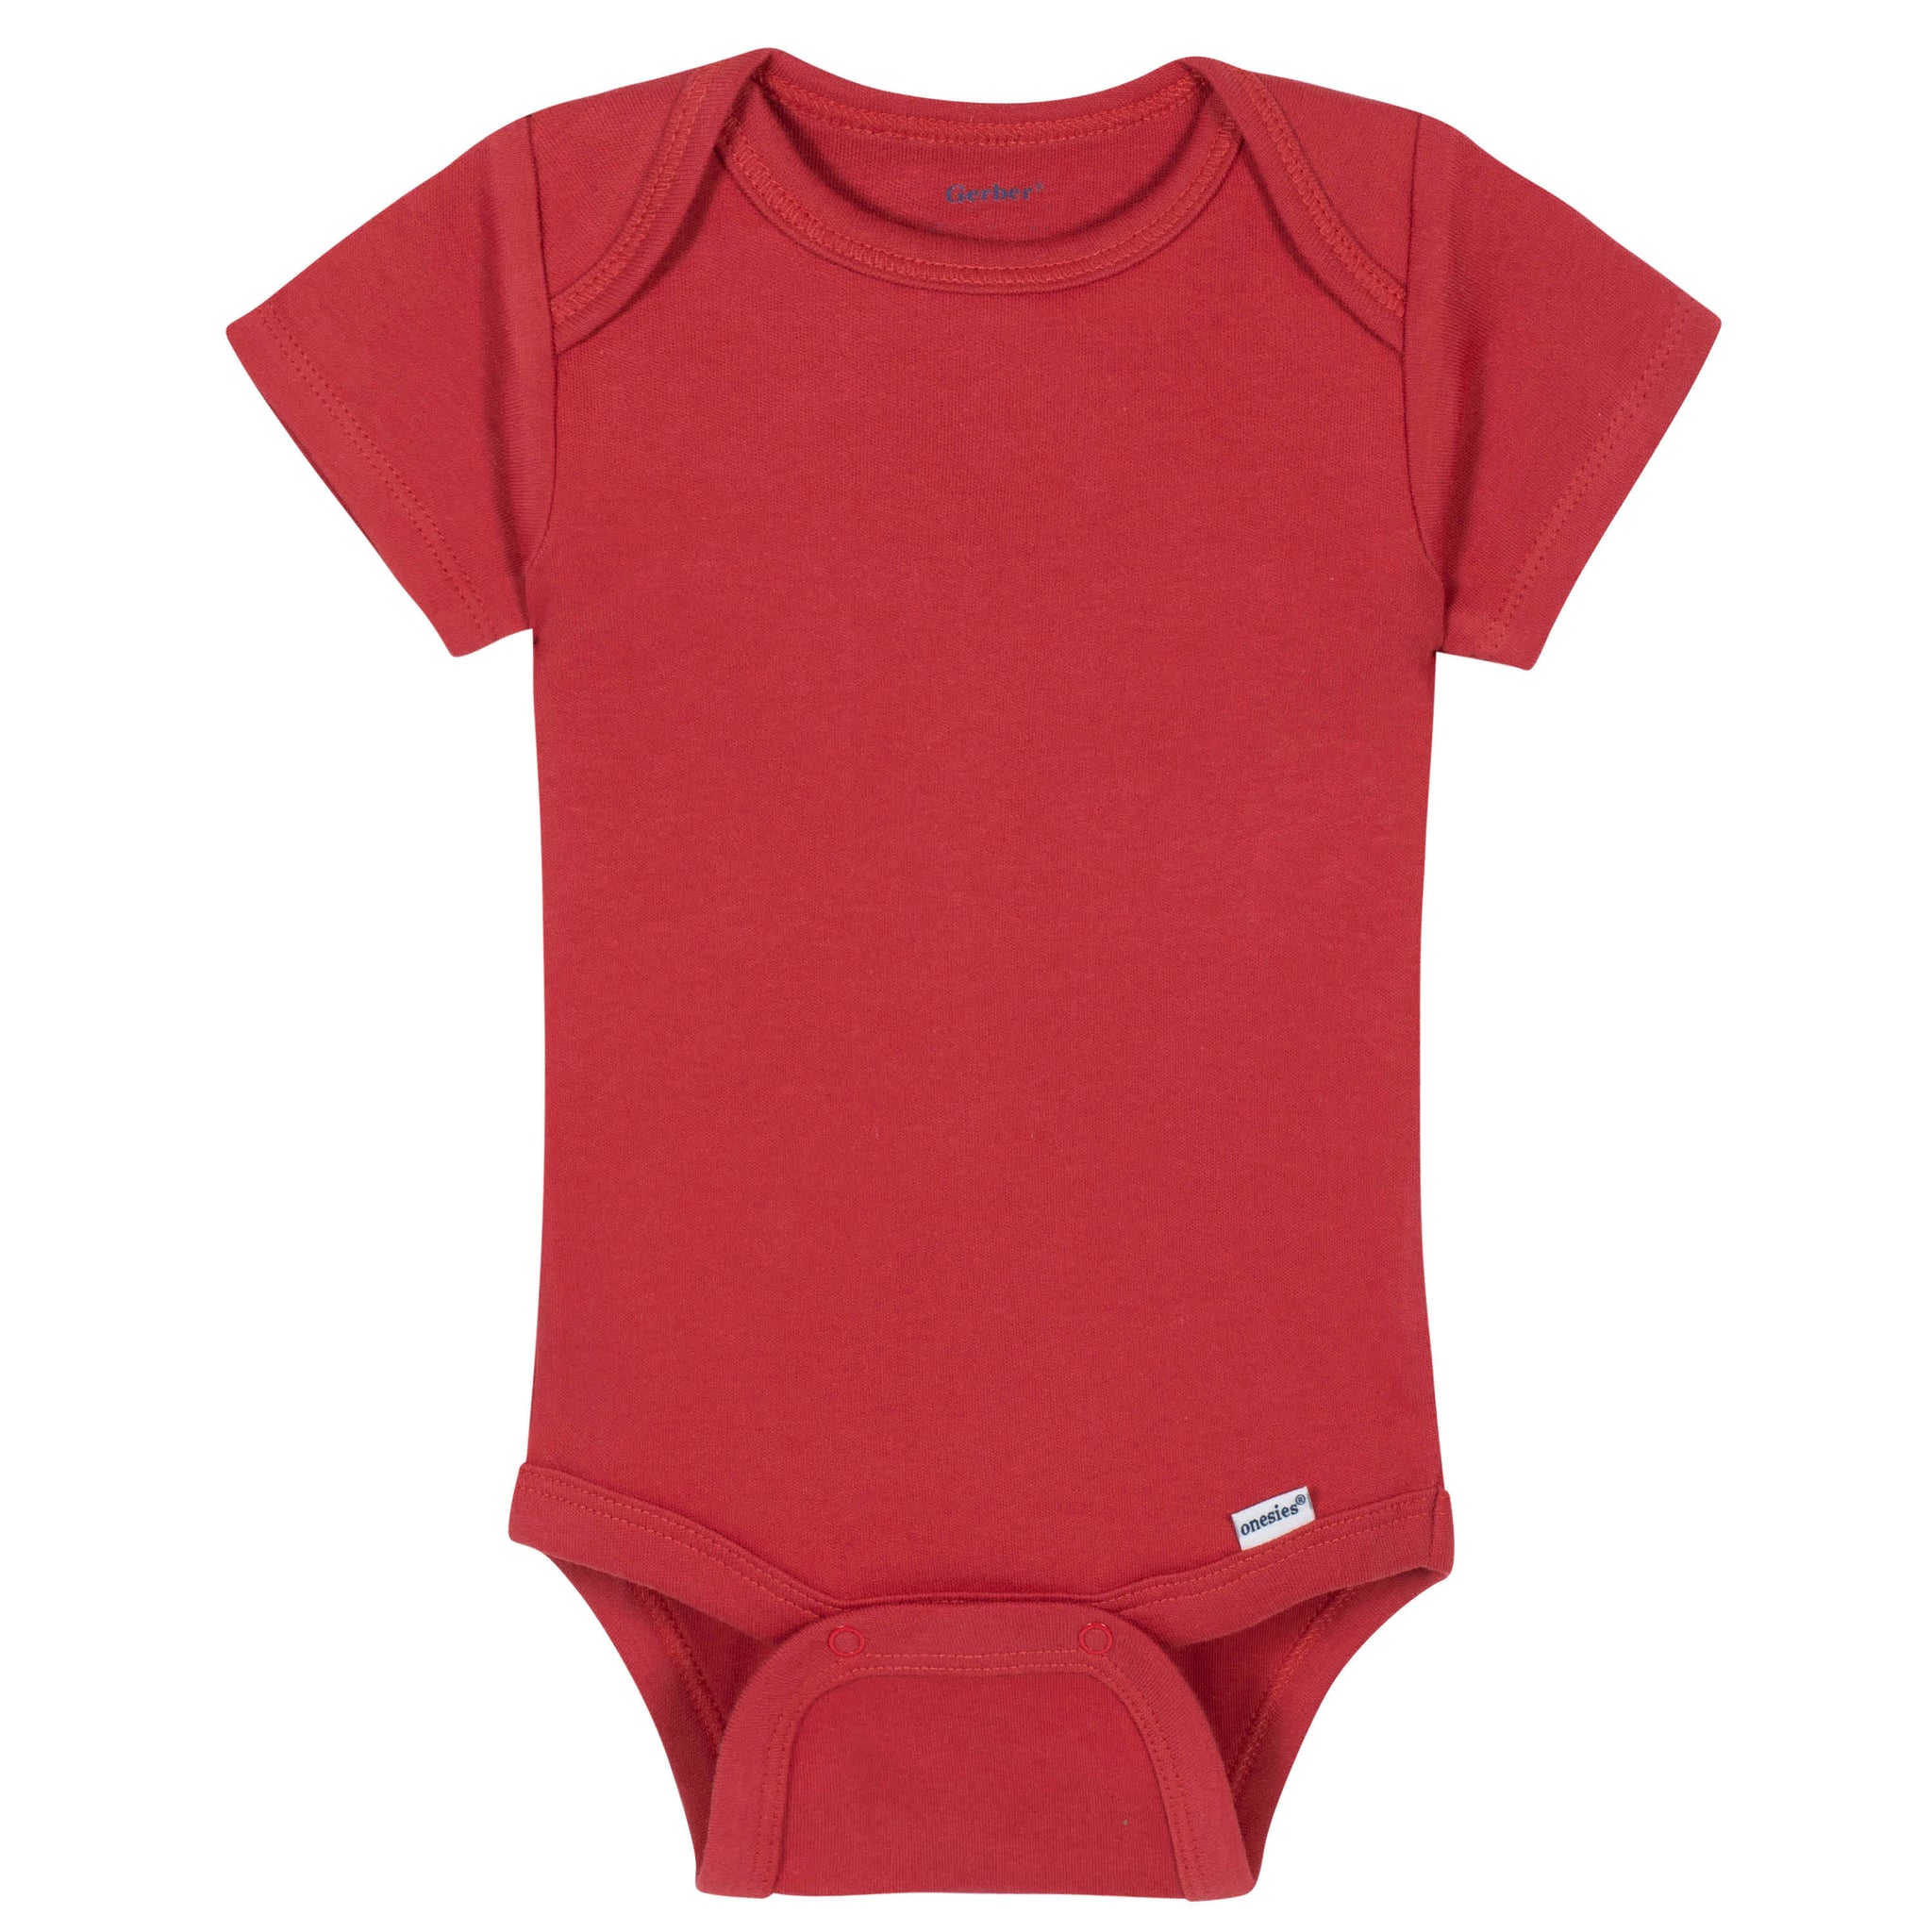 Gerber® Premium Red Short Sleeve Onesies® Brand Bodysuit - 10 Colors Available